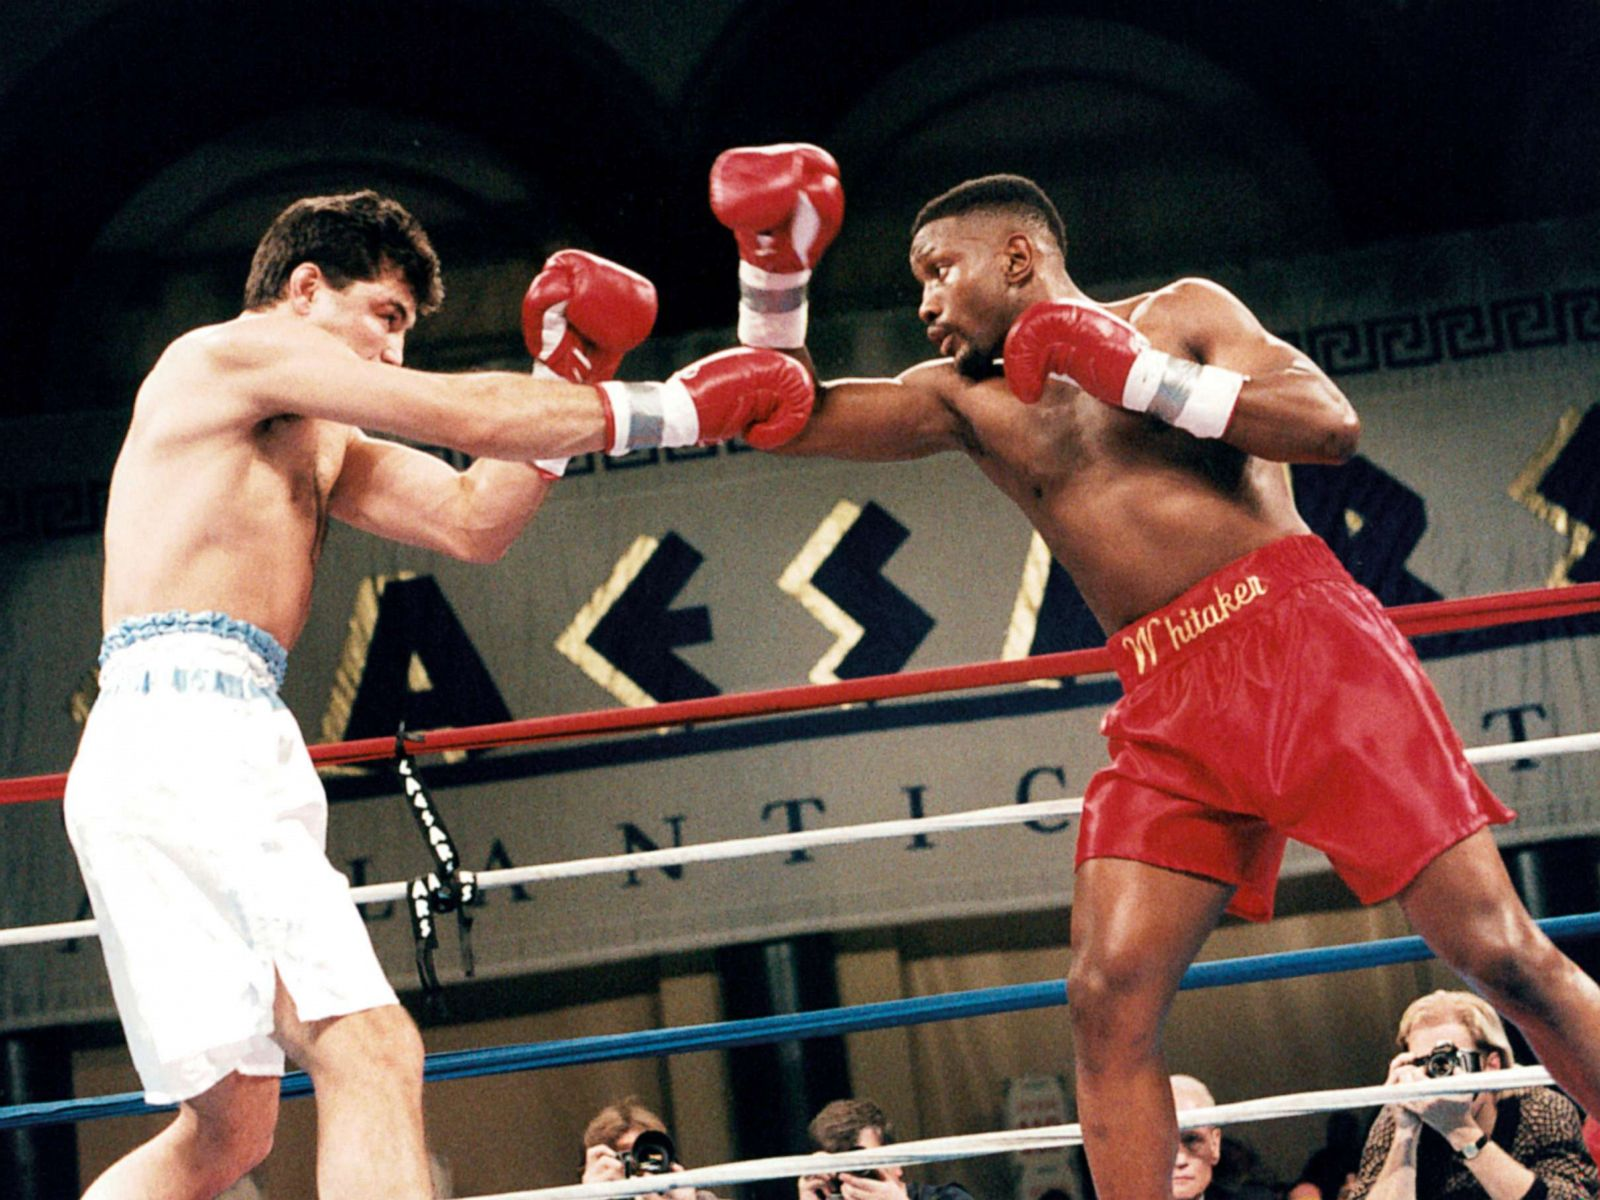 Former boxing champ Pernell 'Sweet Pea' Whitaker fatally